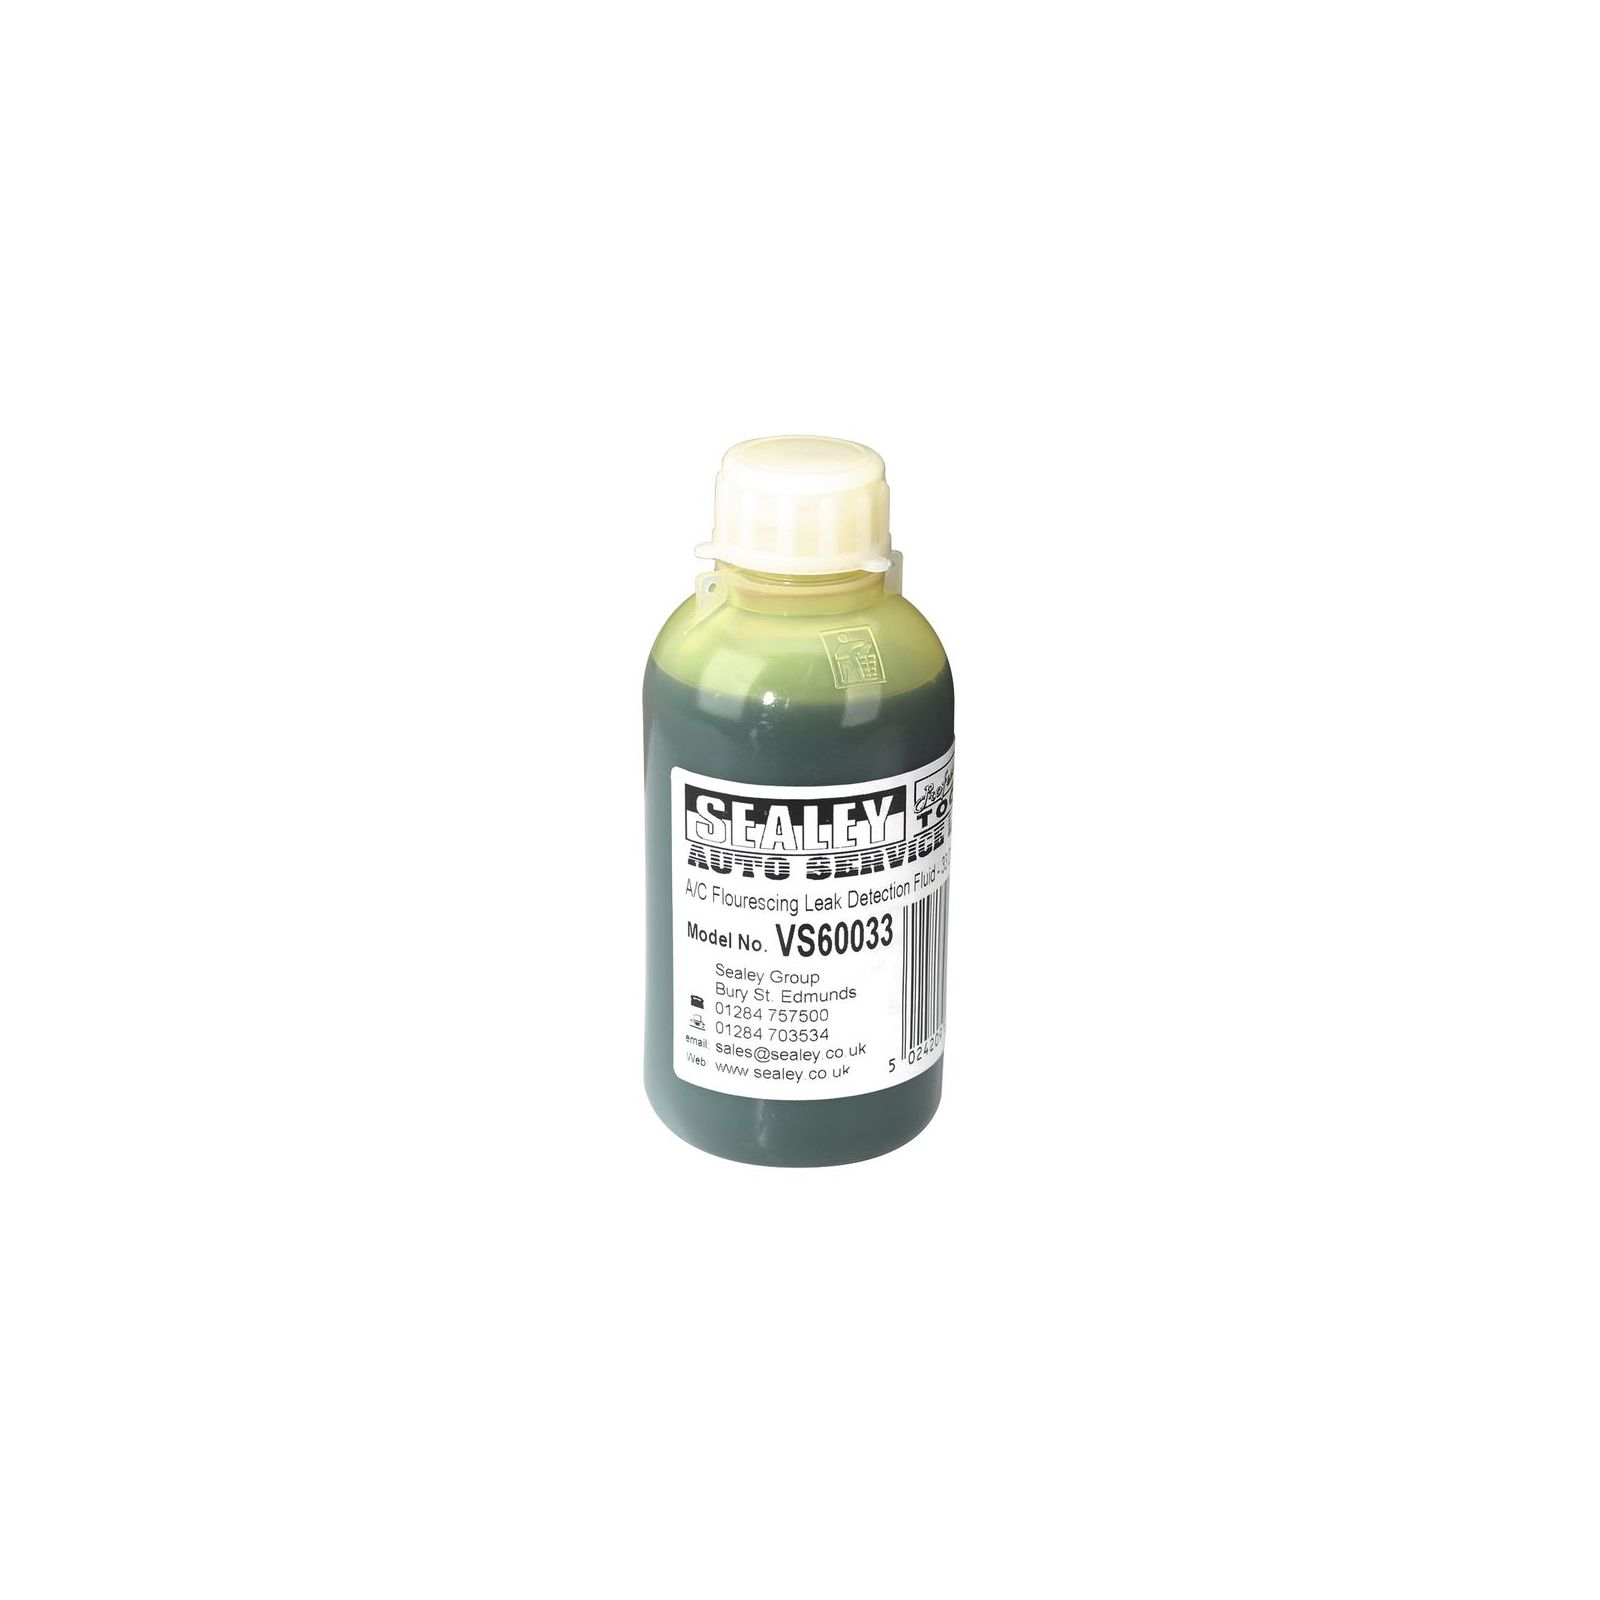 Details about Sealey Air Conditioning Fluorescing Leak Detection Dye  #8A8E3D